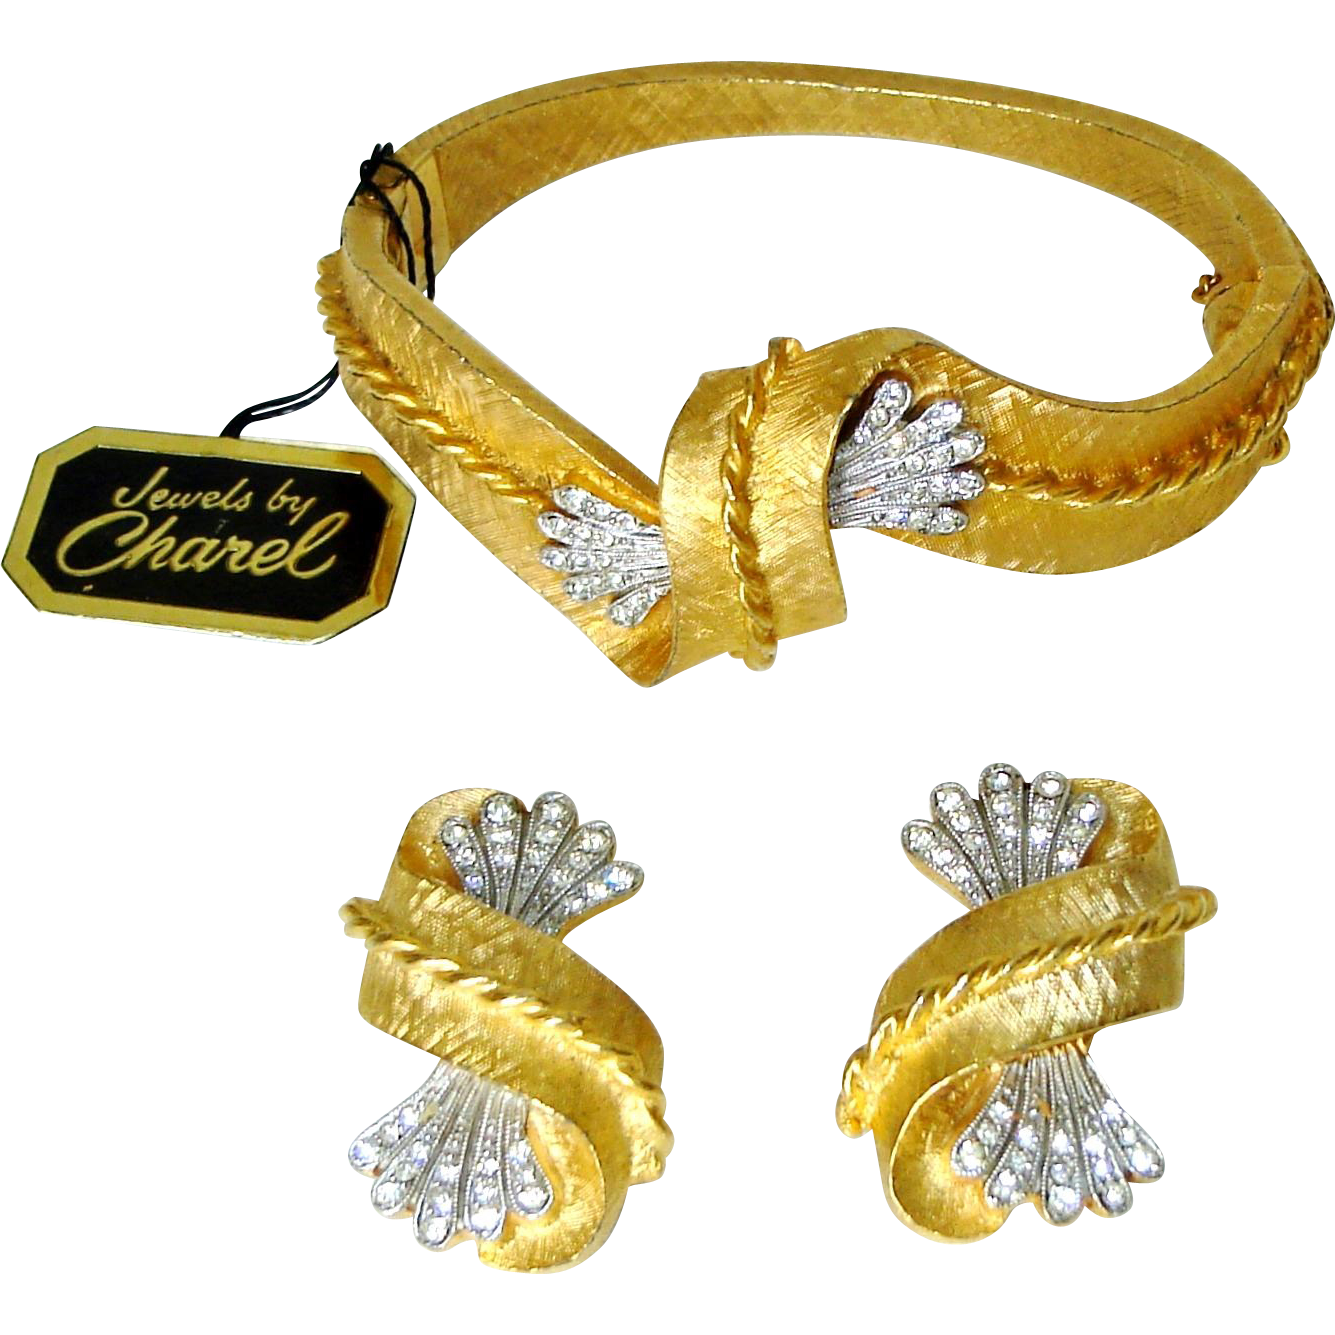 Vintage Charel Clamper Bracelet Earrings Diamante Rhinestones